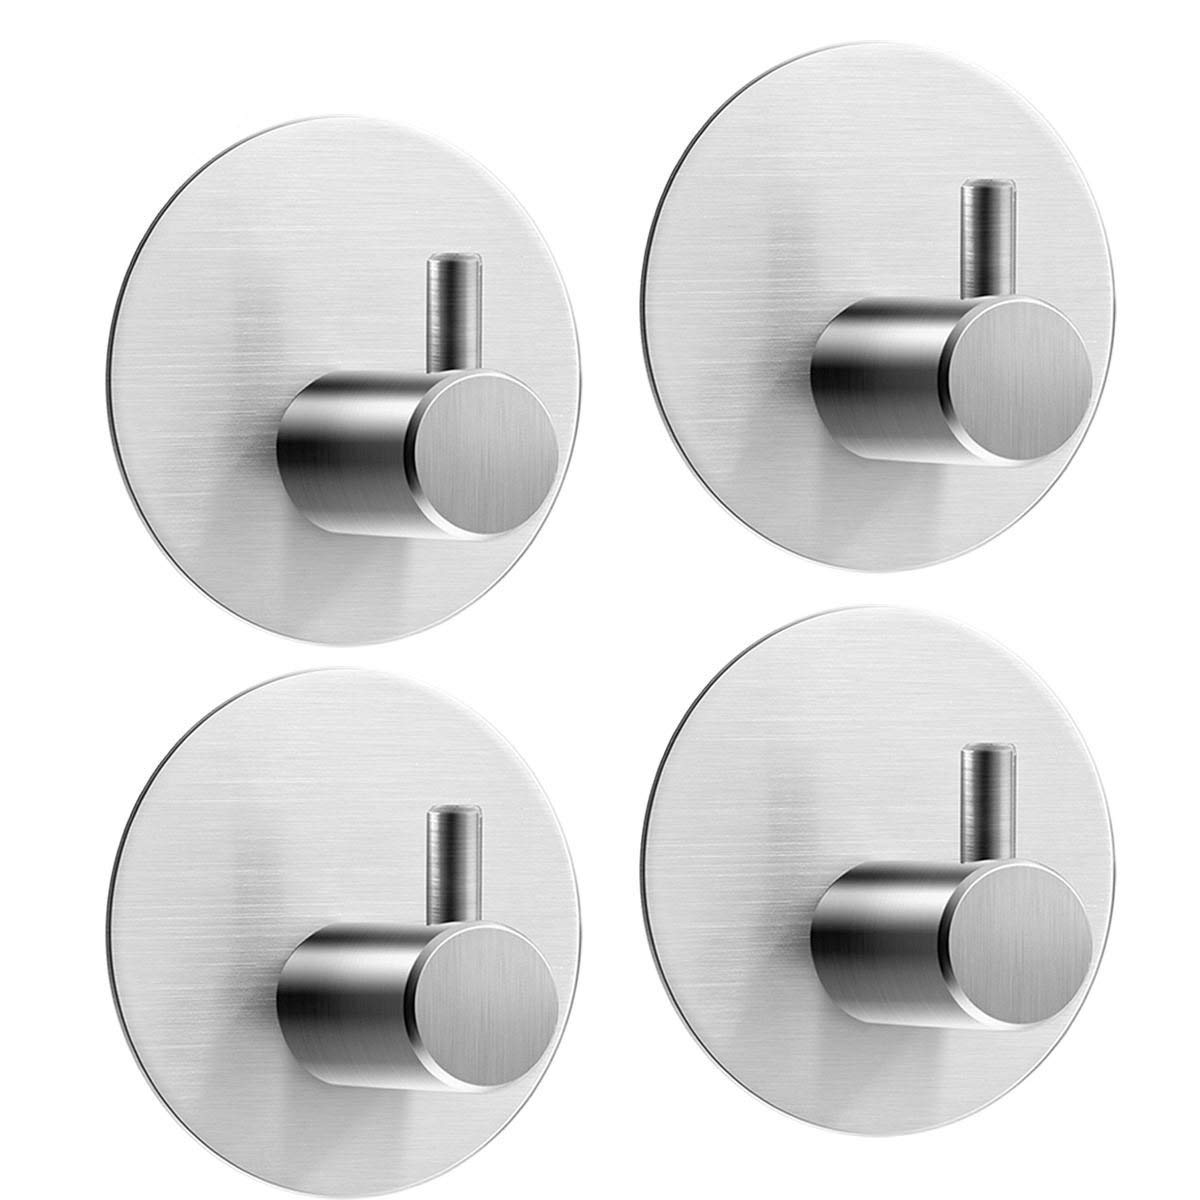 D.RoC Self Adhesive Towel Hooks 4 Pack Max 8kg Round Robe Holders Coat Stick-up Stainless Steel Waterproof 3M Door Command Hooks Hanger for Kitchen Bathrooms Lavatory Closets by D.RoC